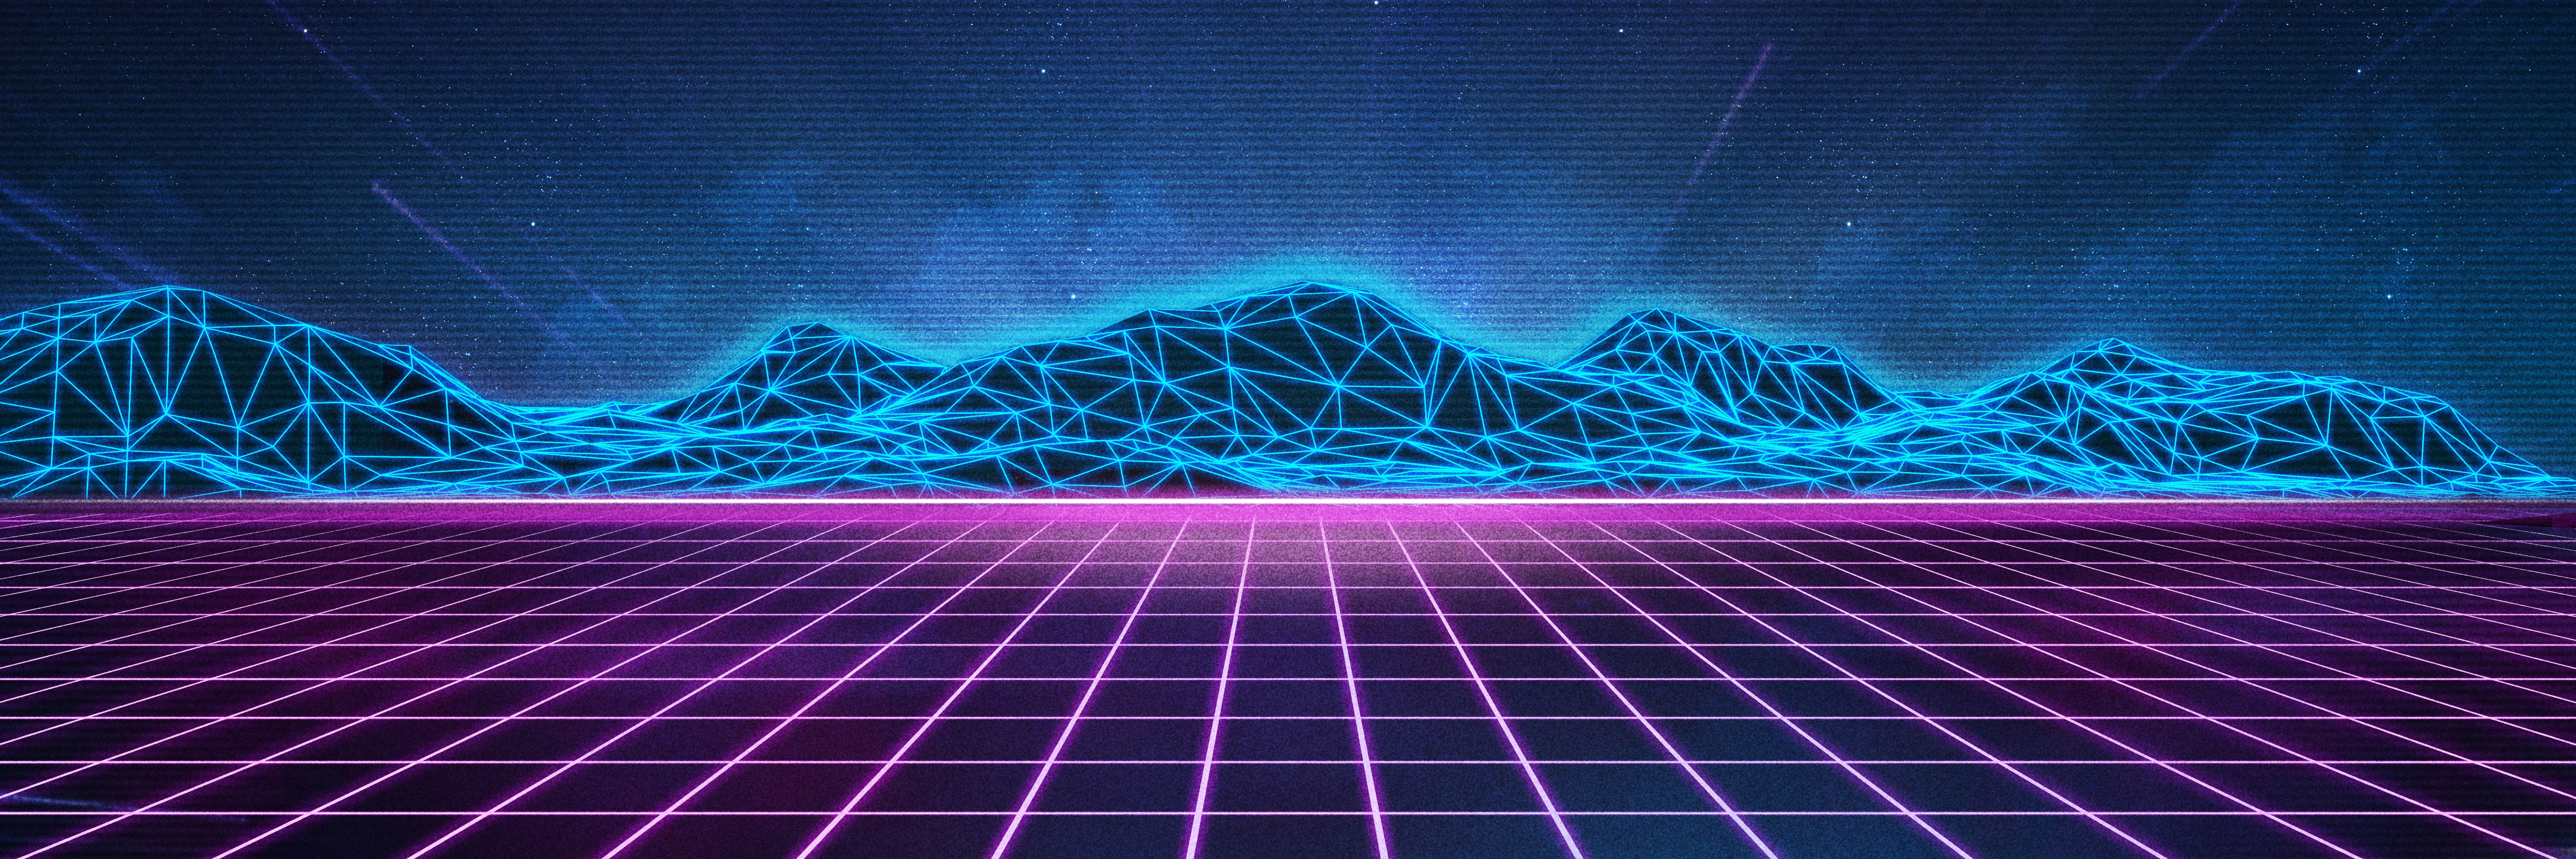 synthwave 4K wallpapers for your desktop or mobile screen